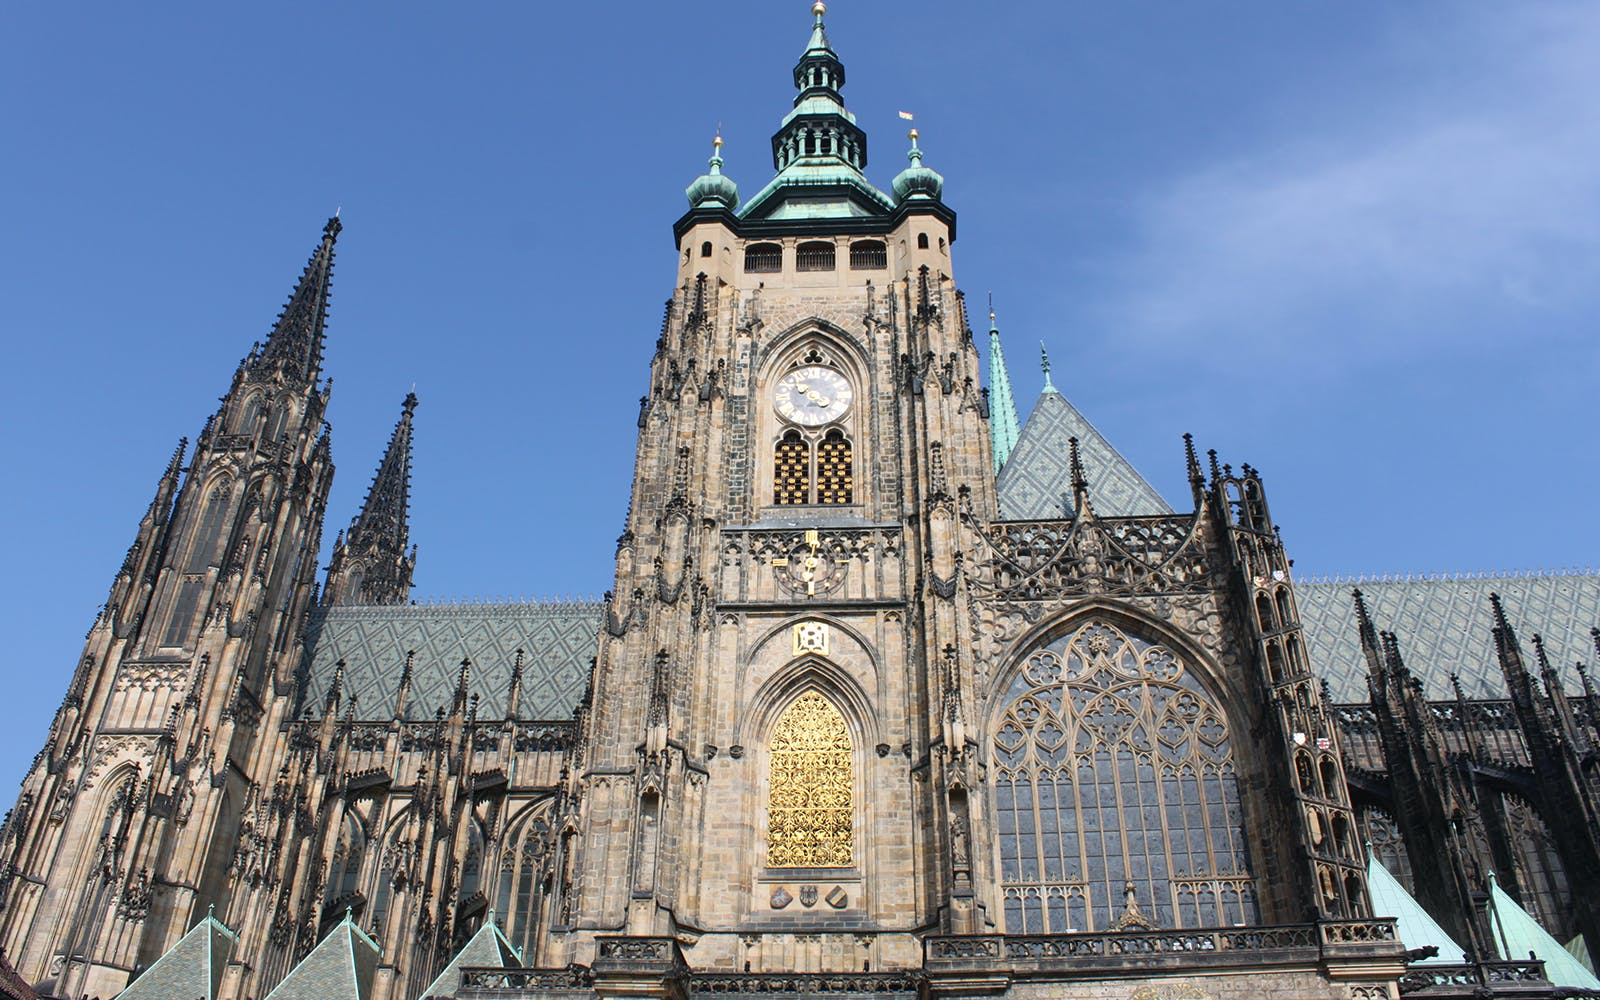 skip the line access to prague castle with introduction-2